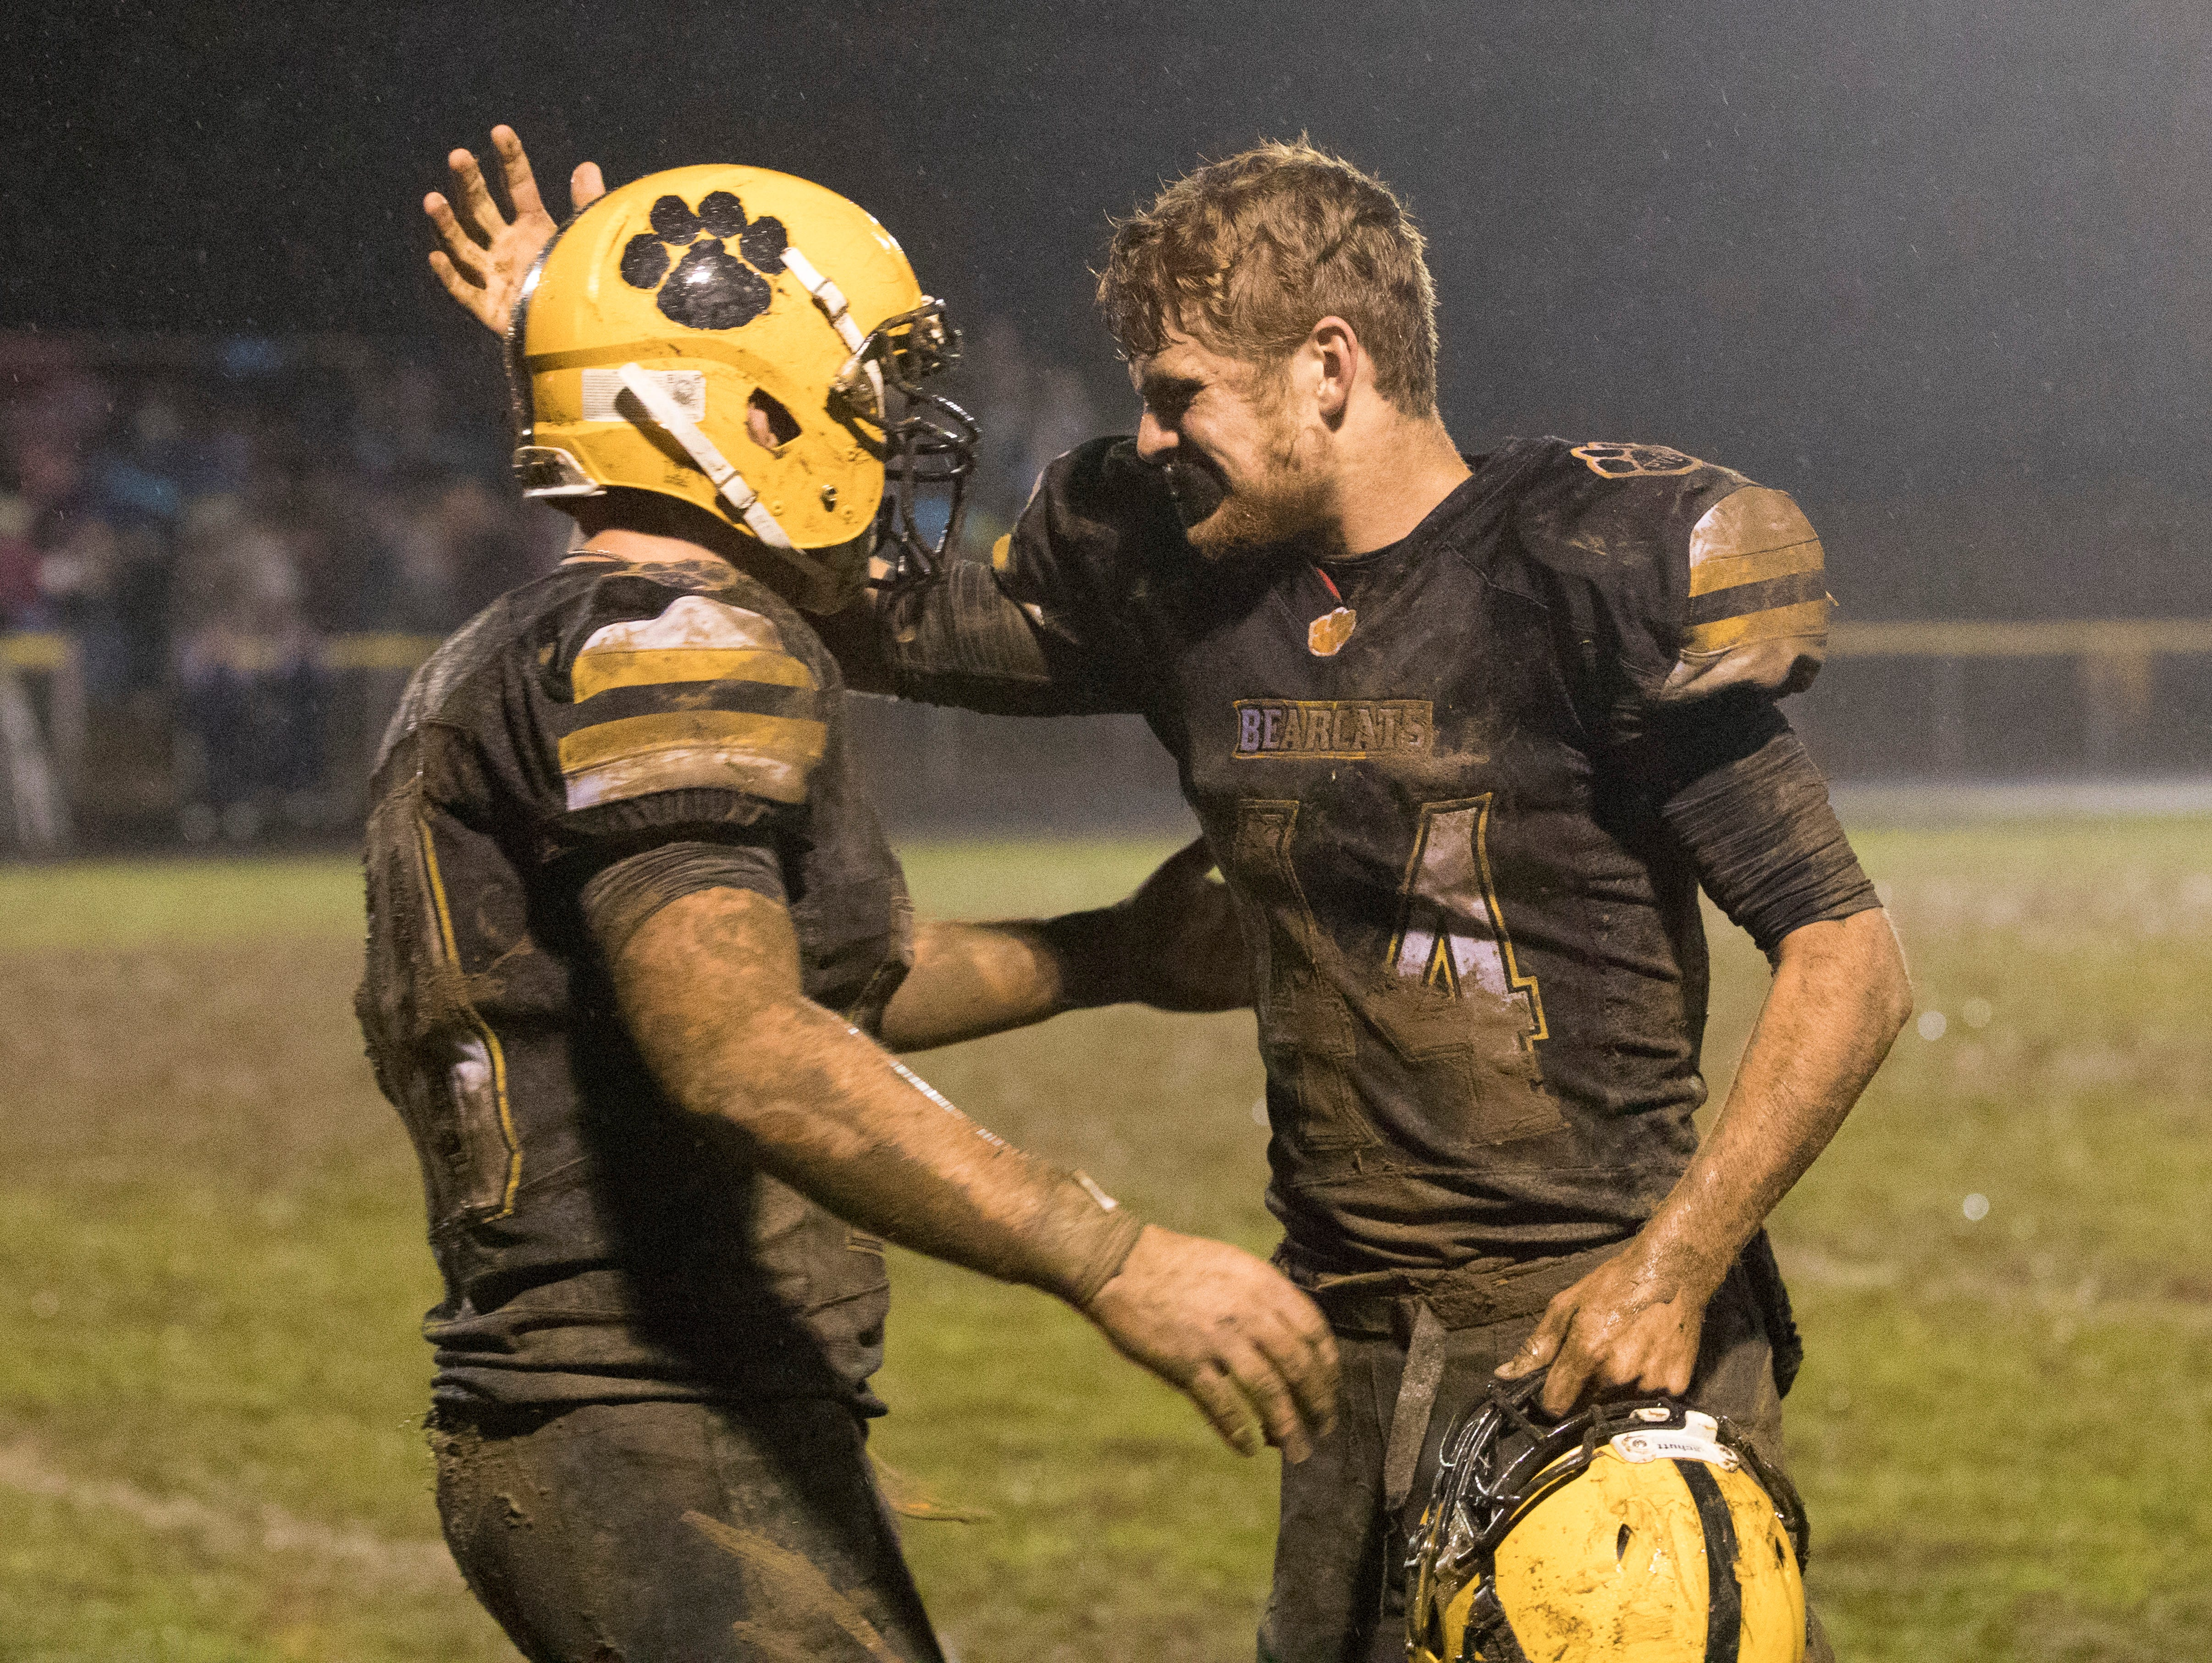 Paint Valley defeated Adena Friday night 16-3, making them undefeated in the SVC and this year's gold ball recipients.